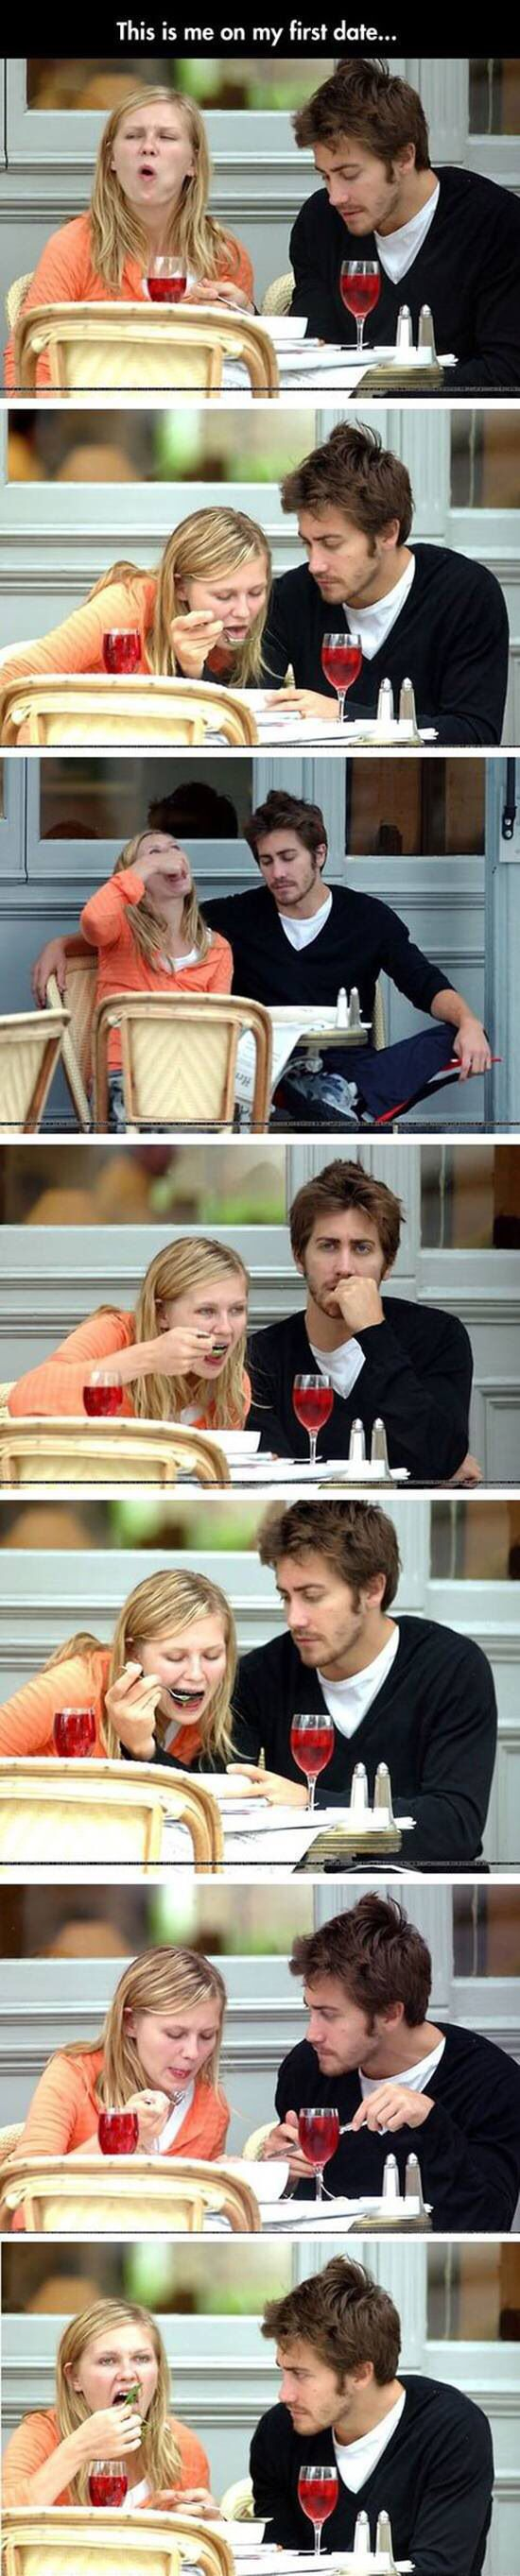 What I'd do on a date with Jake.